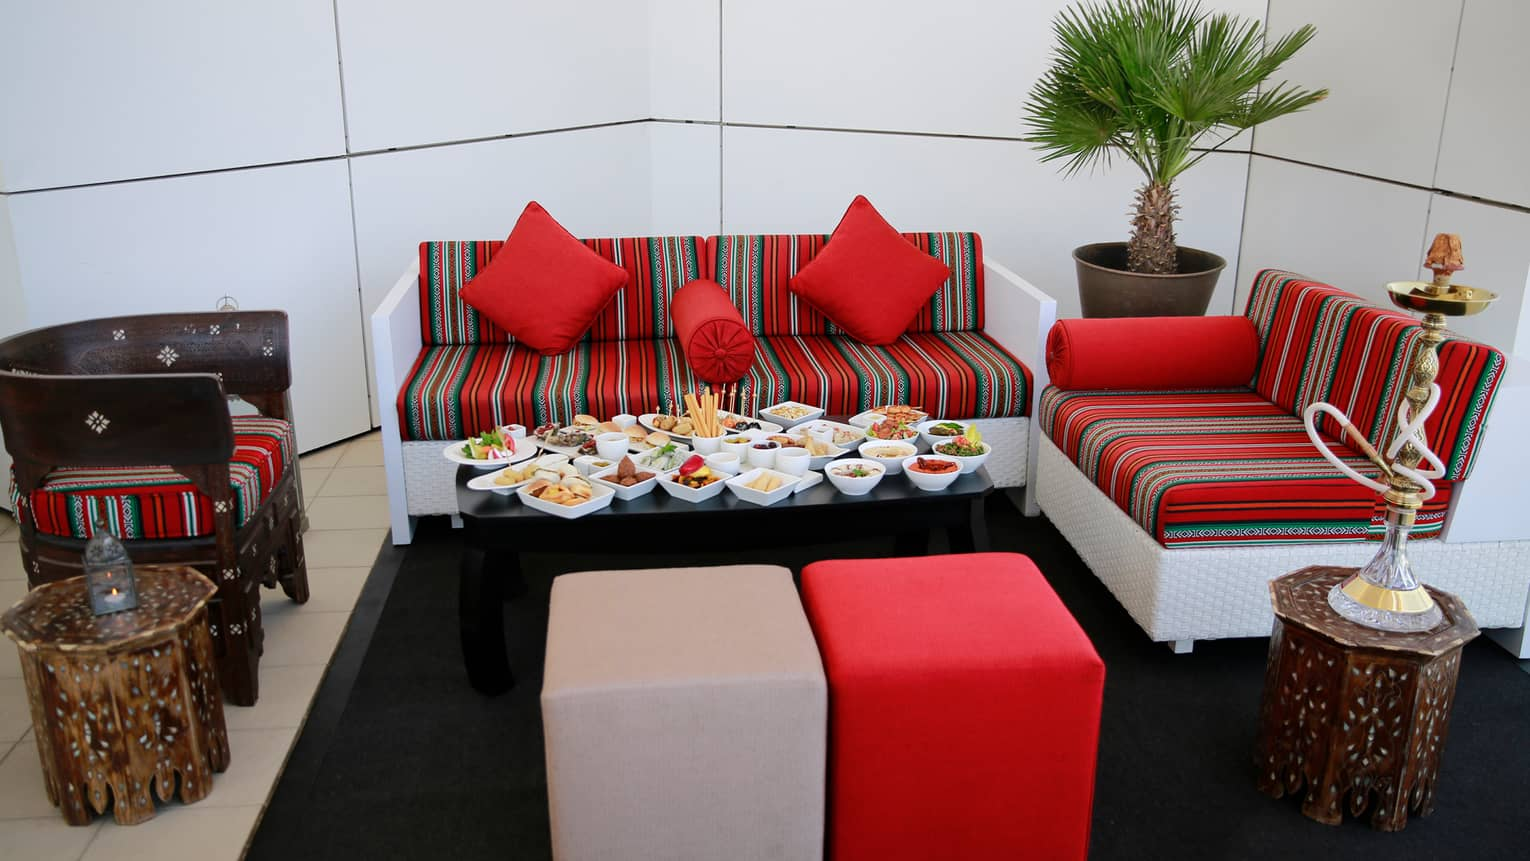 Close-up of small black table with more than a dozen white dishes with mezze appetizers and snacks, colourful striped sofa